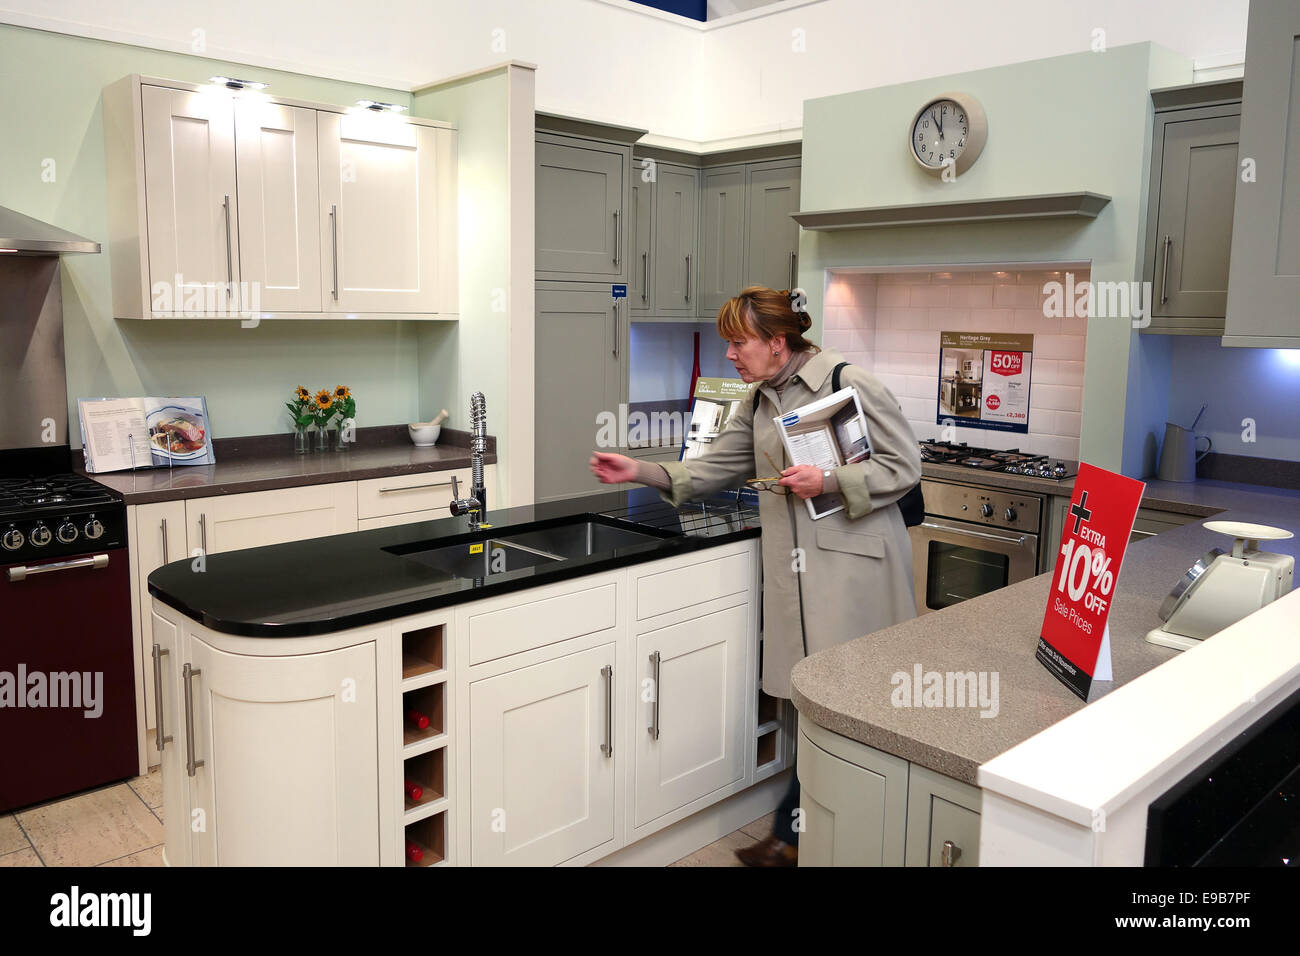 New For Kitchens Woman Shopping Looking At New Kitchen Kitchens At Wickes Uk Stock